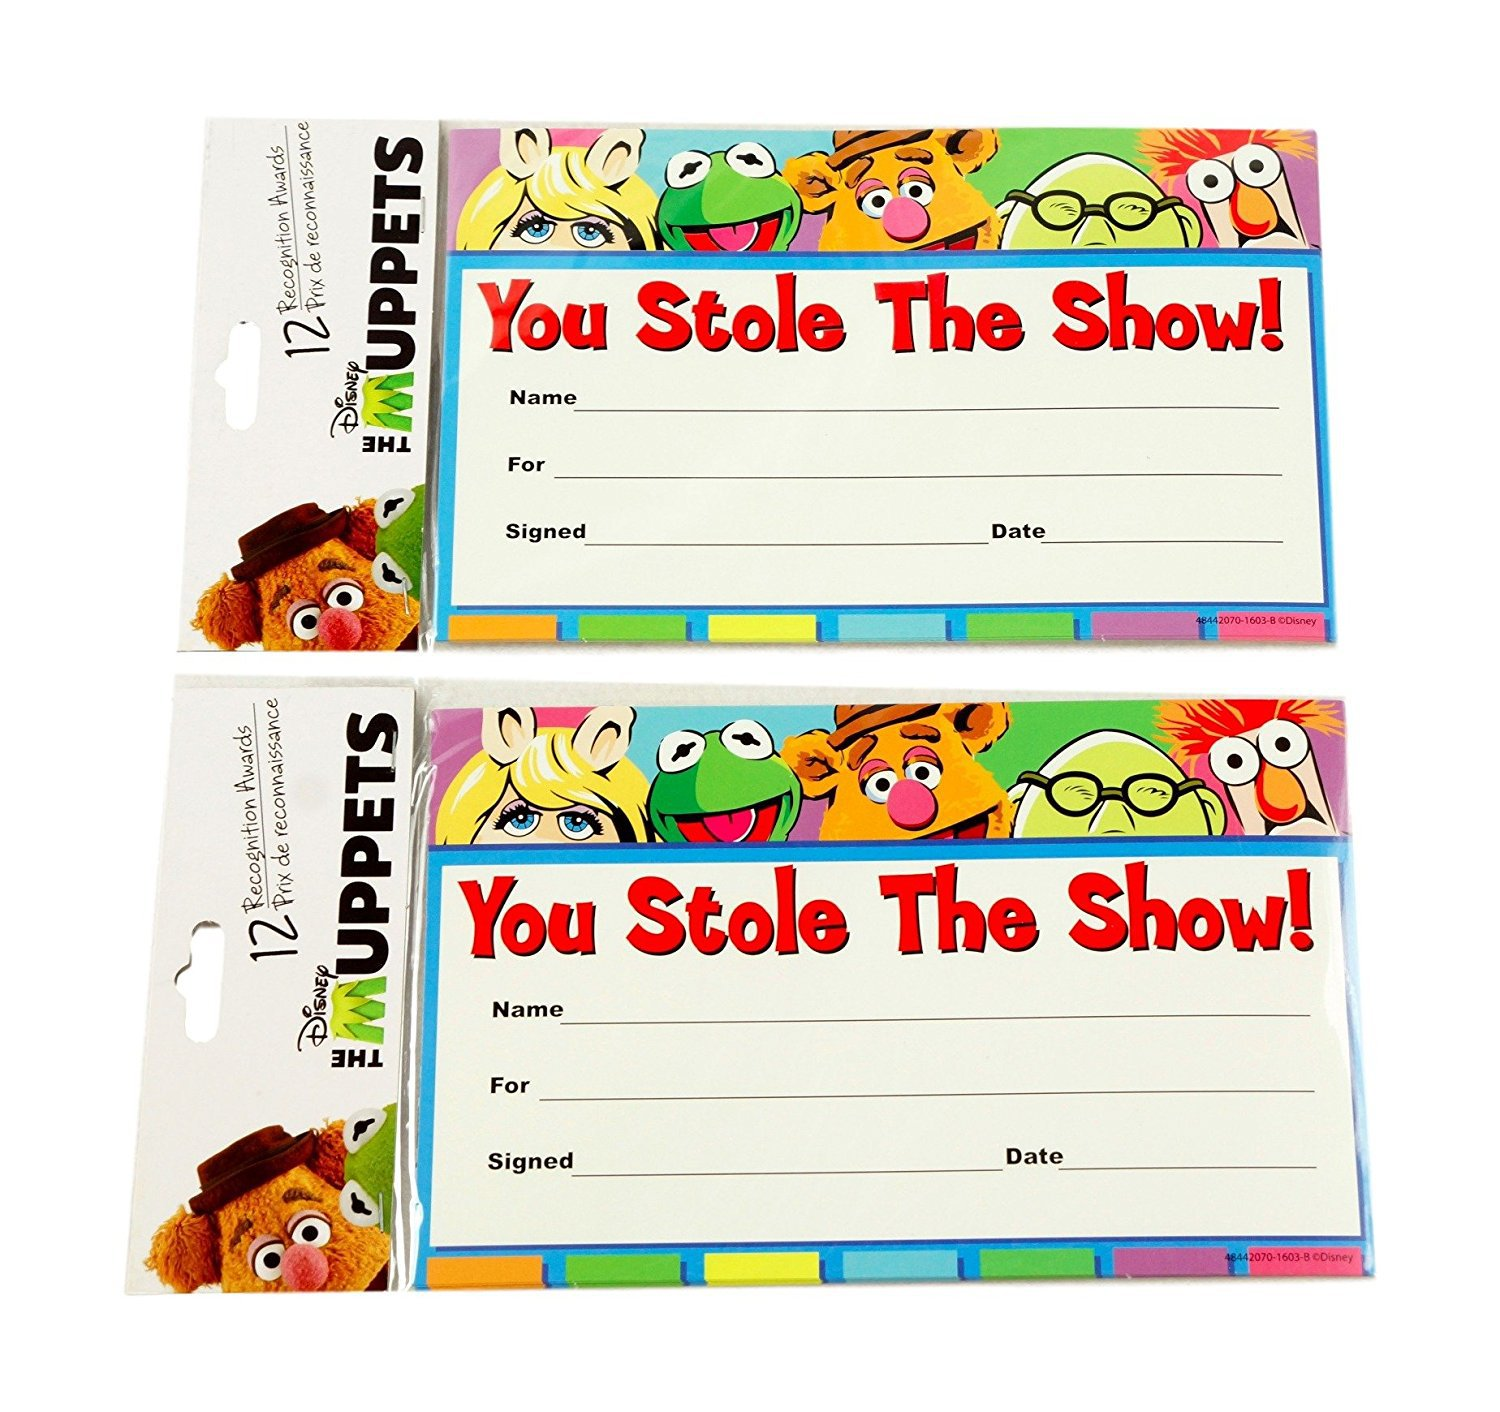 Disney Muppets Recognition Awards Bundle- 2 Packs of 12 8x5 awards